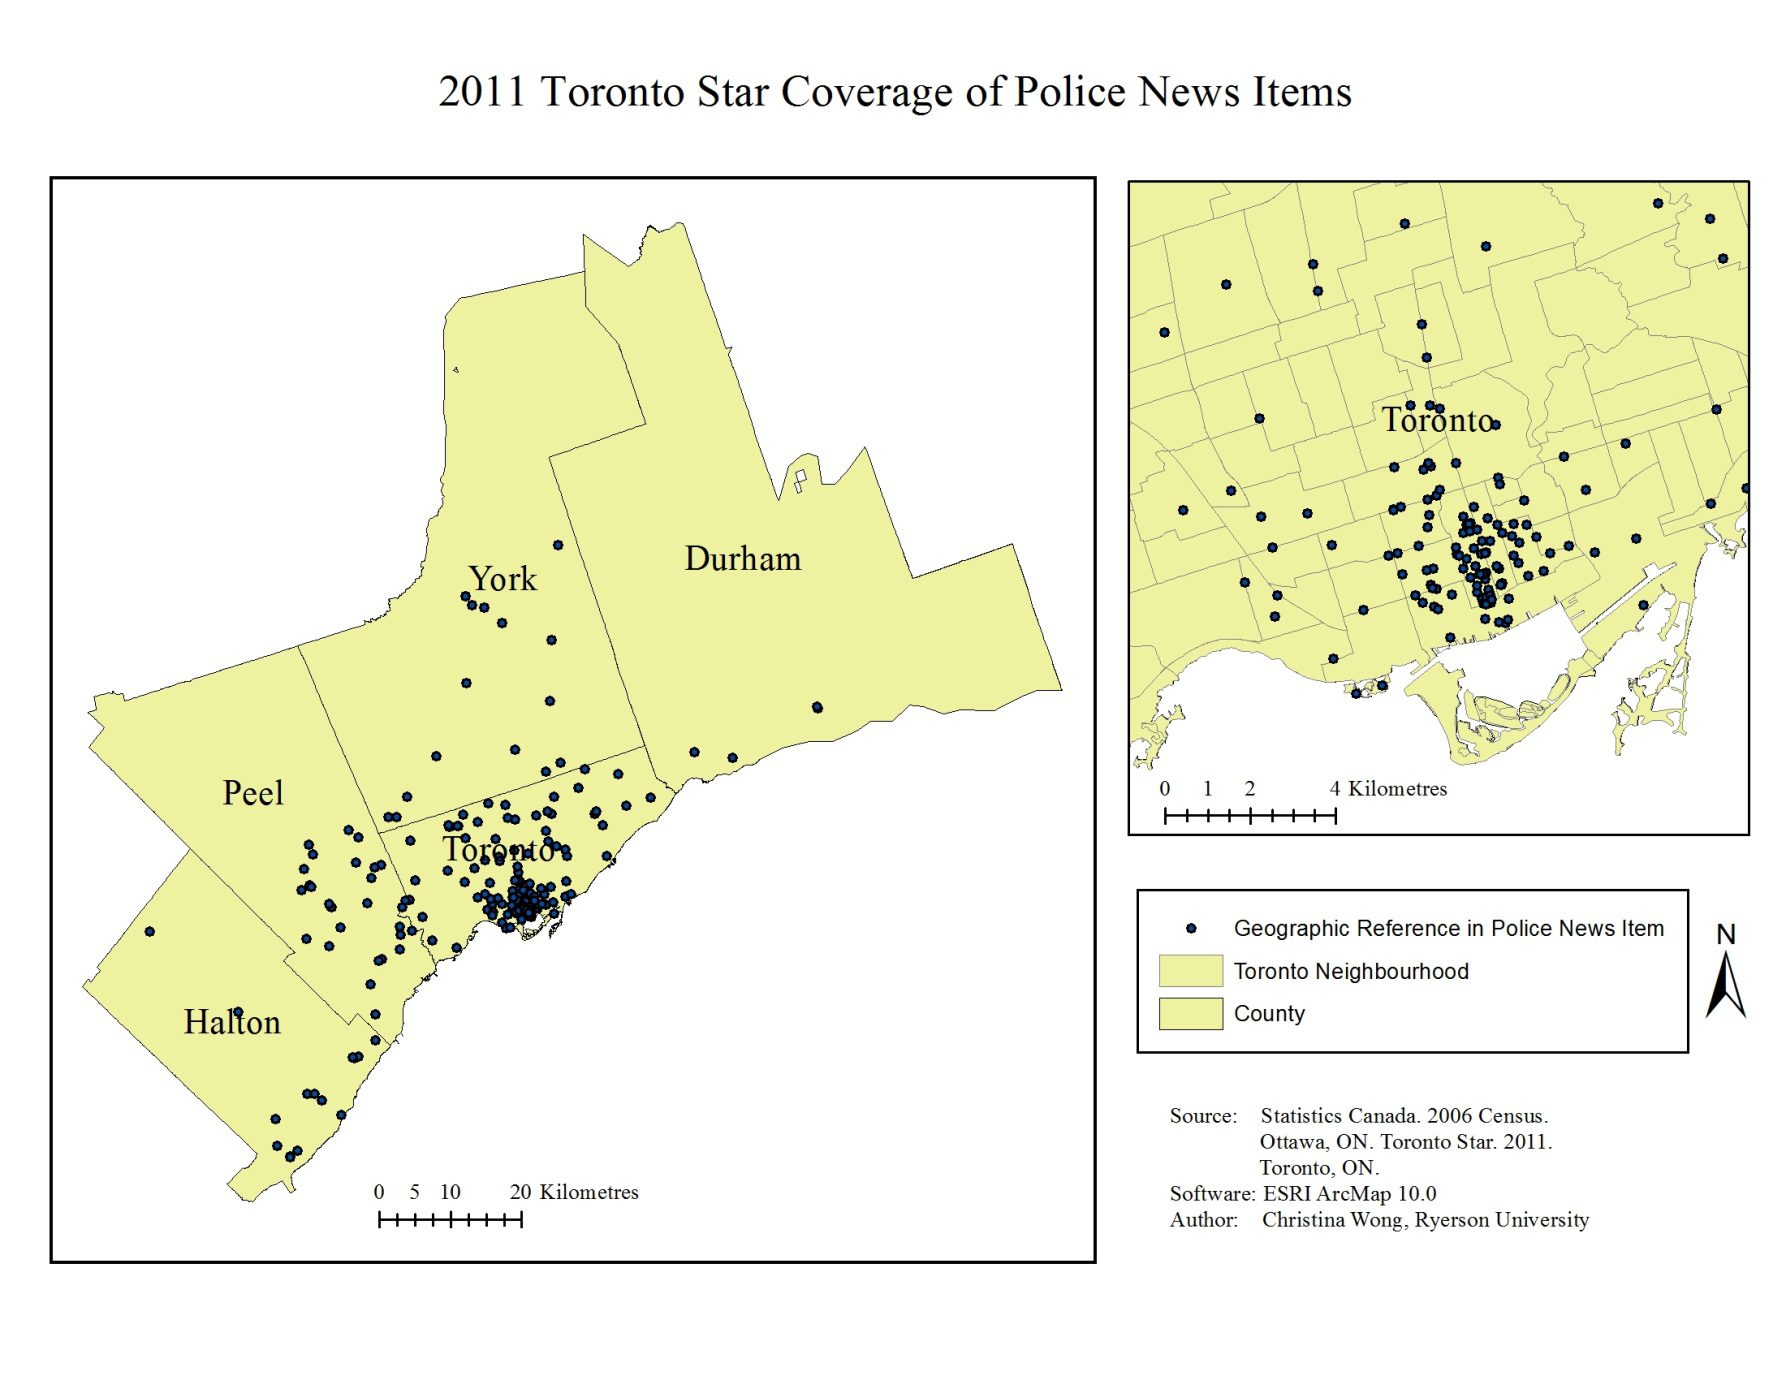 Figure 1. Toronto Star crime coverage